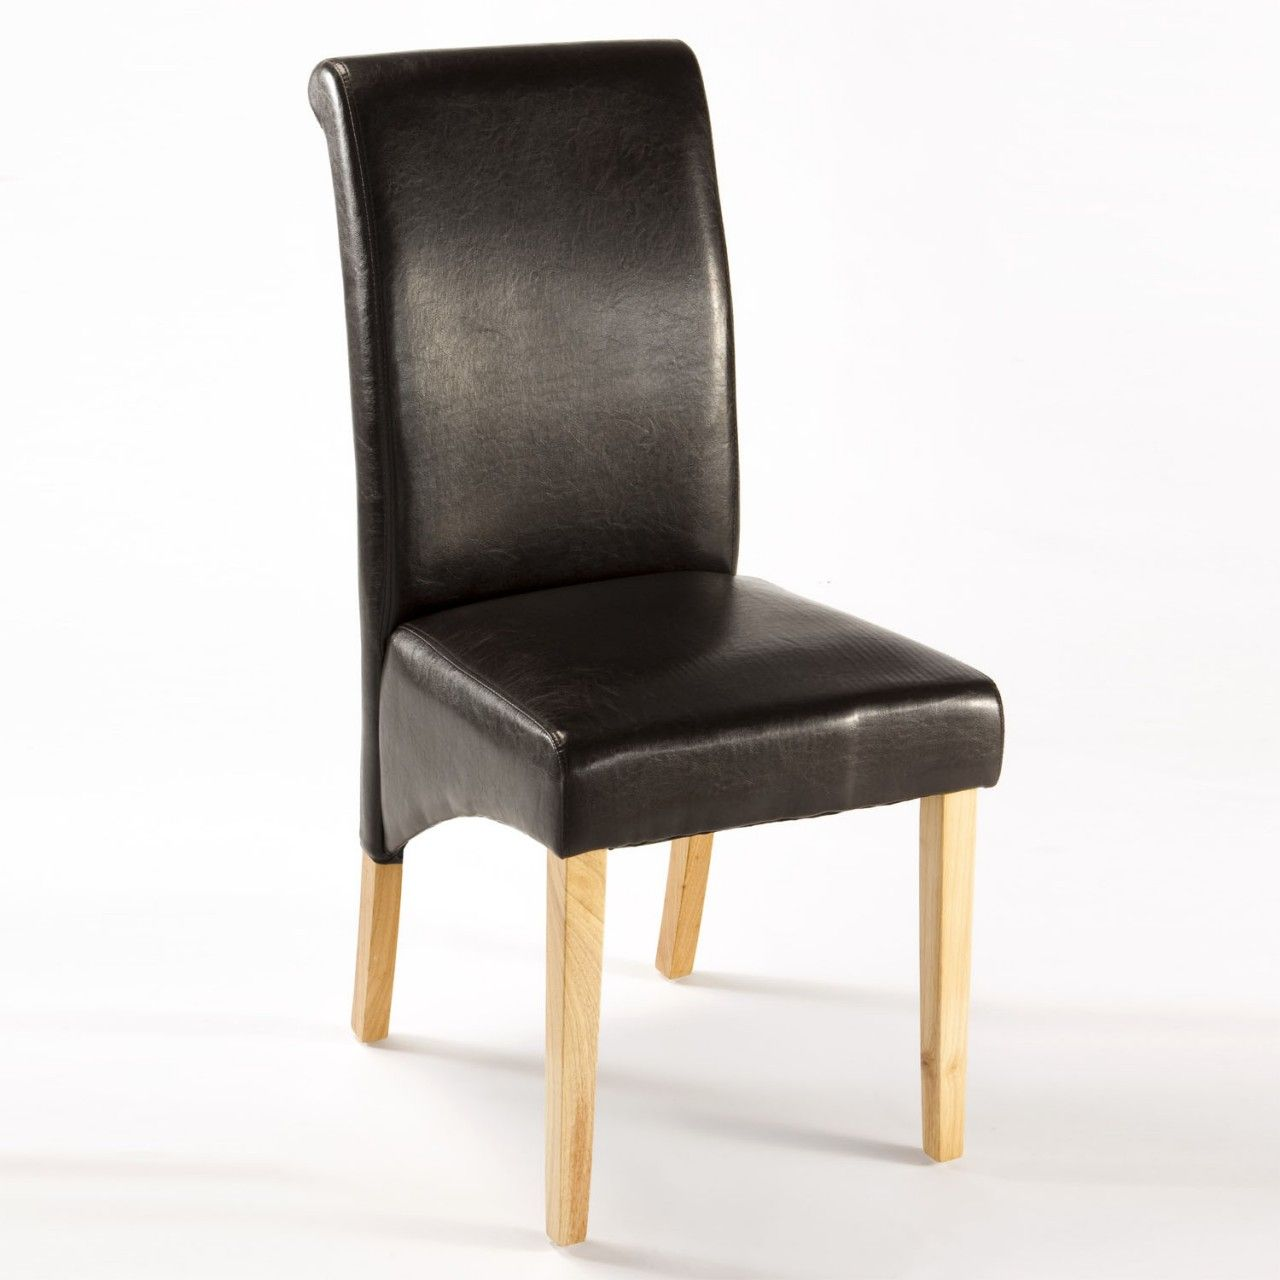 Faux Leather Dining Chair Covers Rectangular Leg Glides Easy On The Eye Black